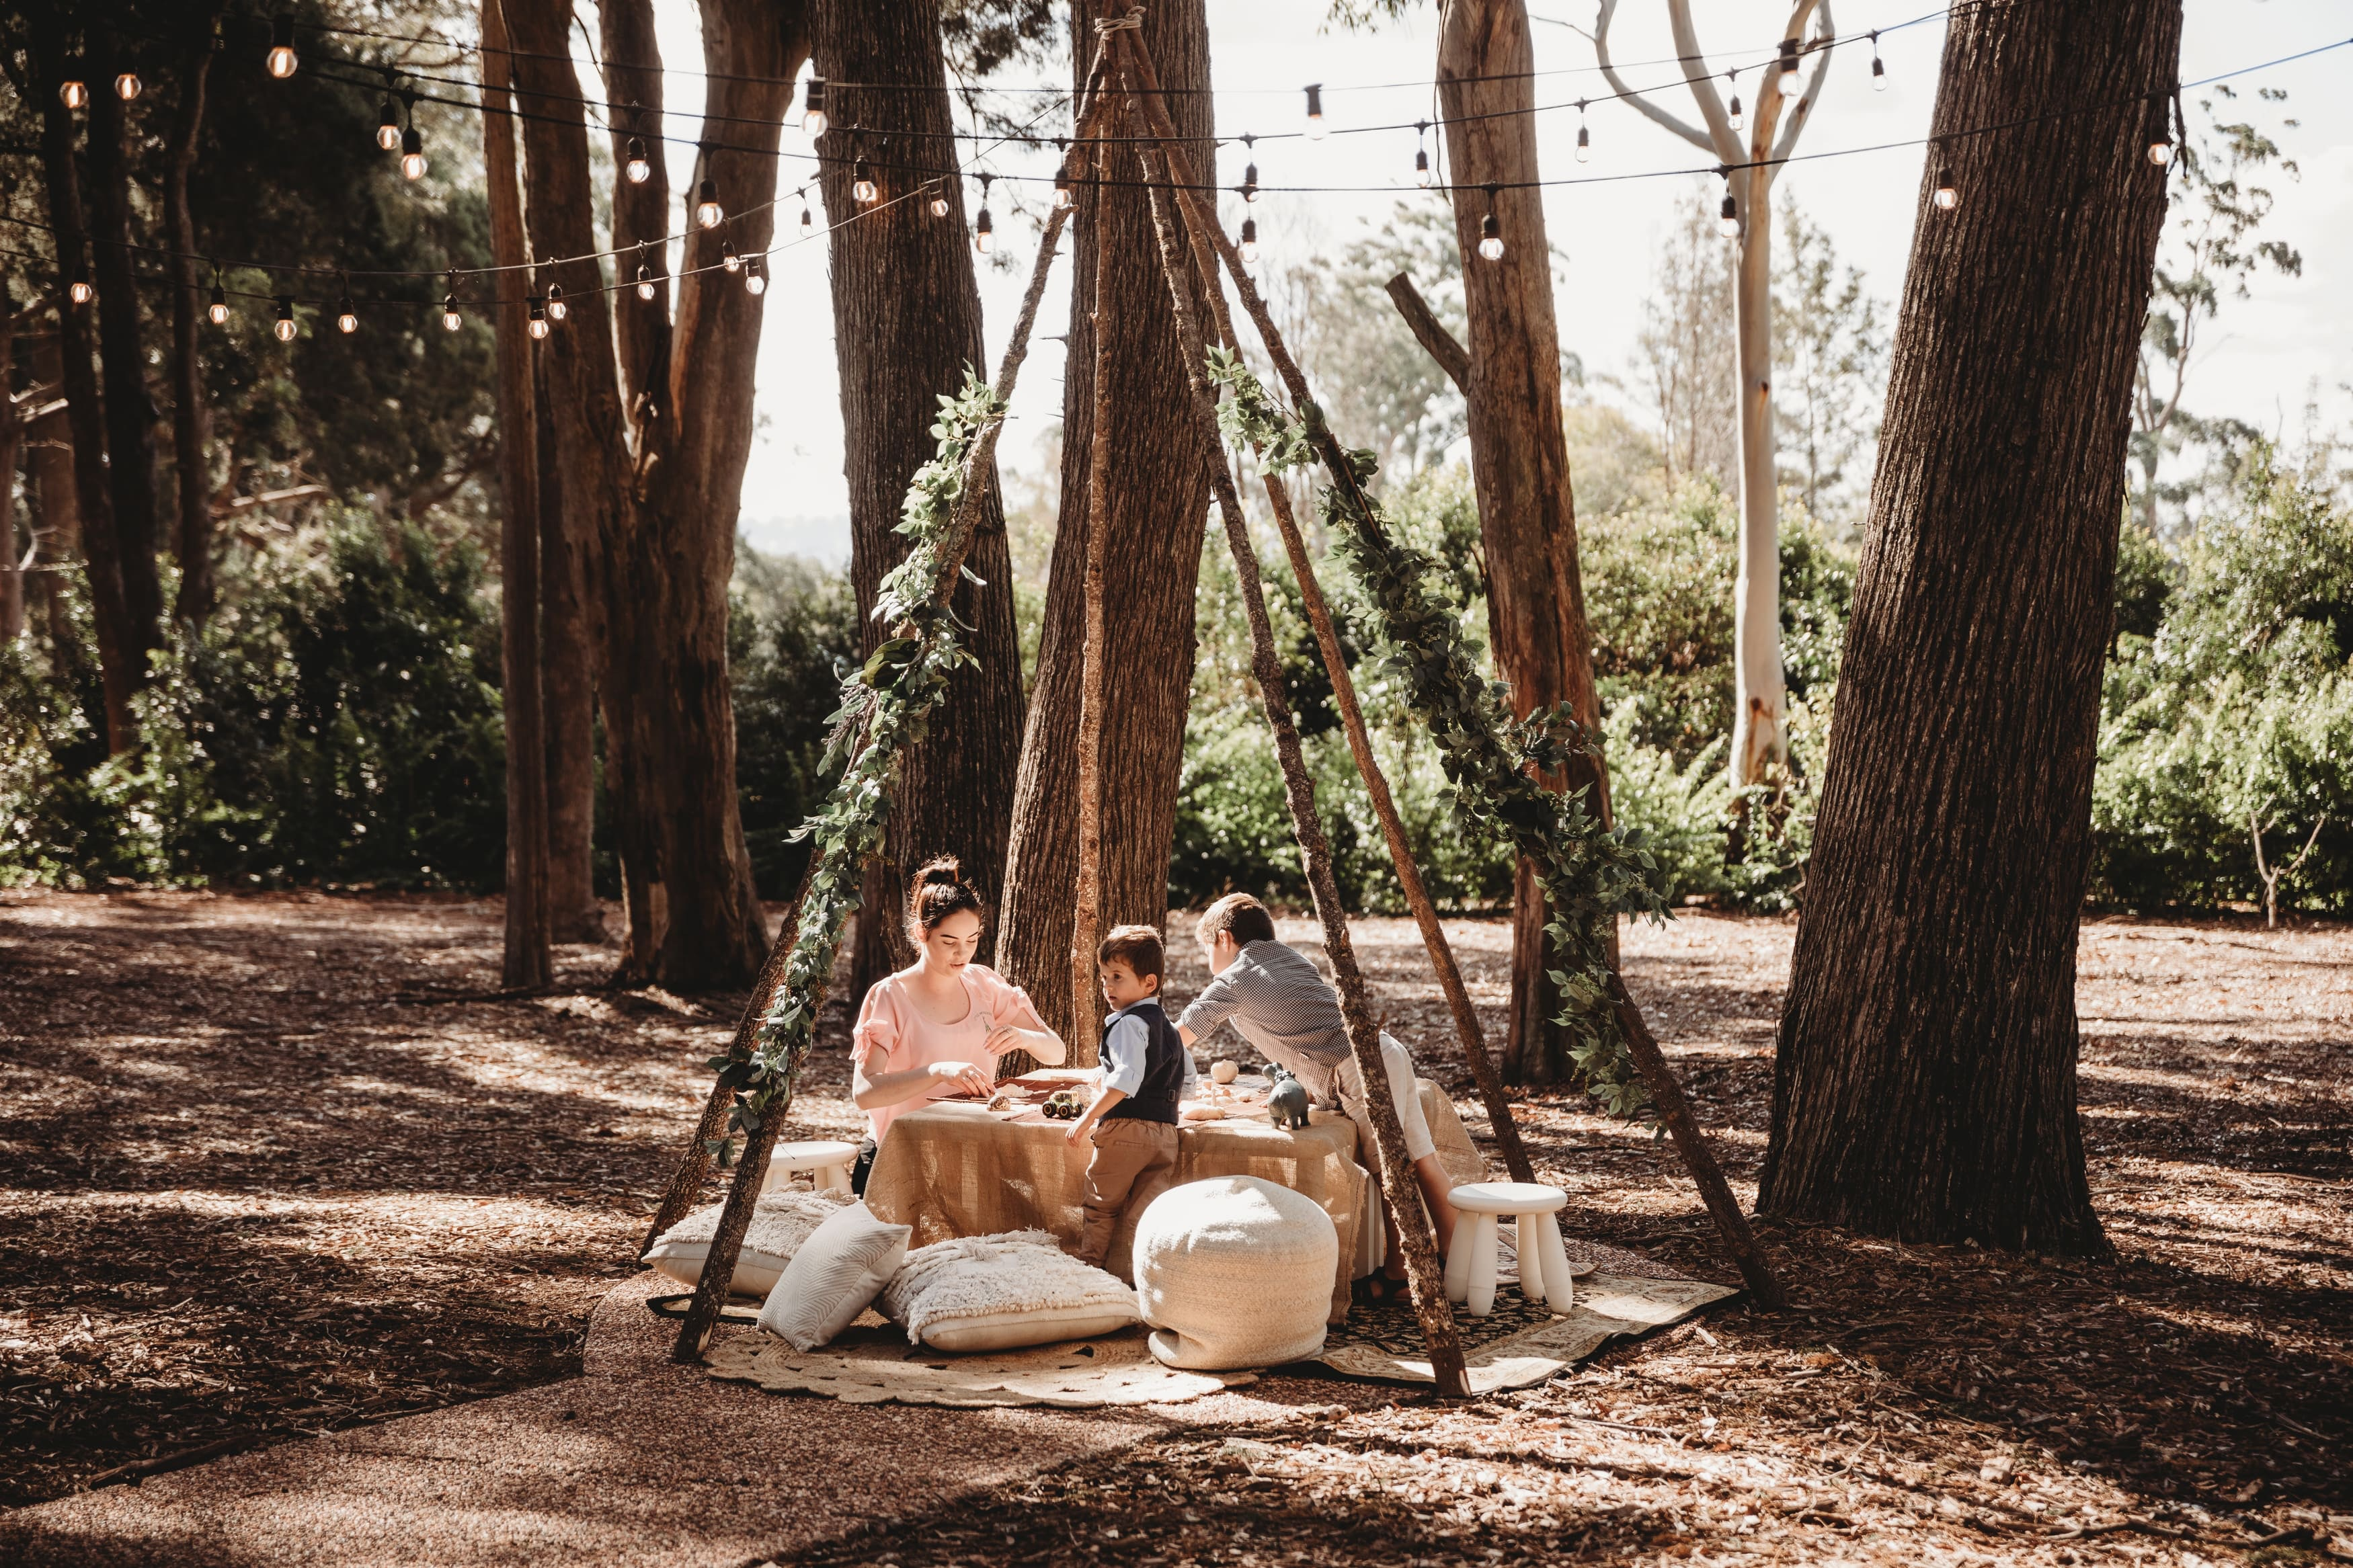 children and woman sitting outside playing under wooden teepee structure